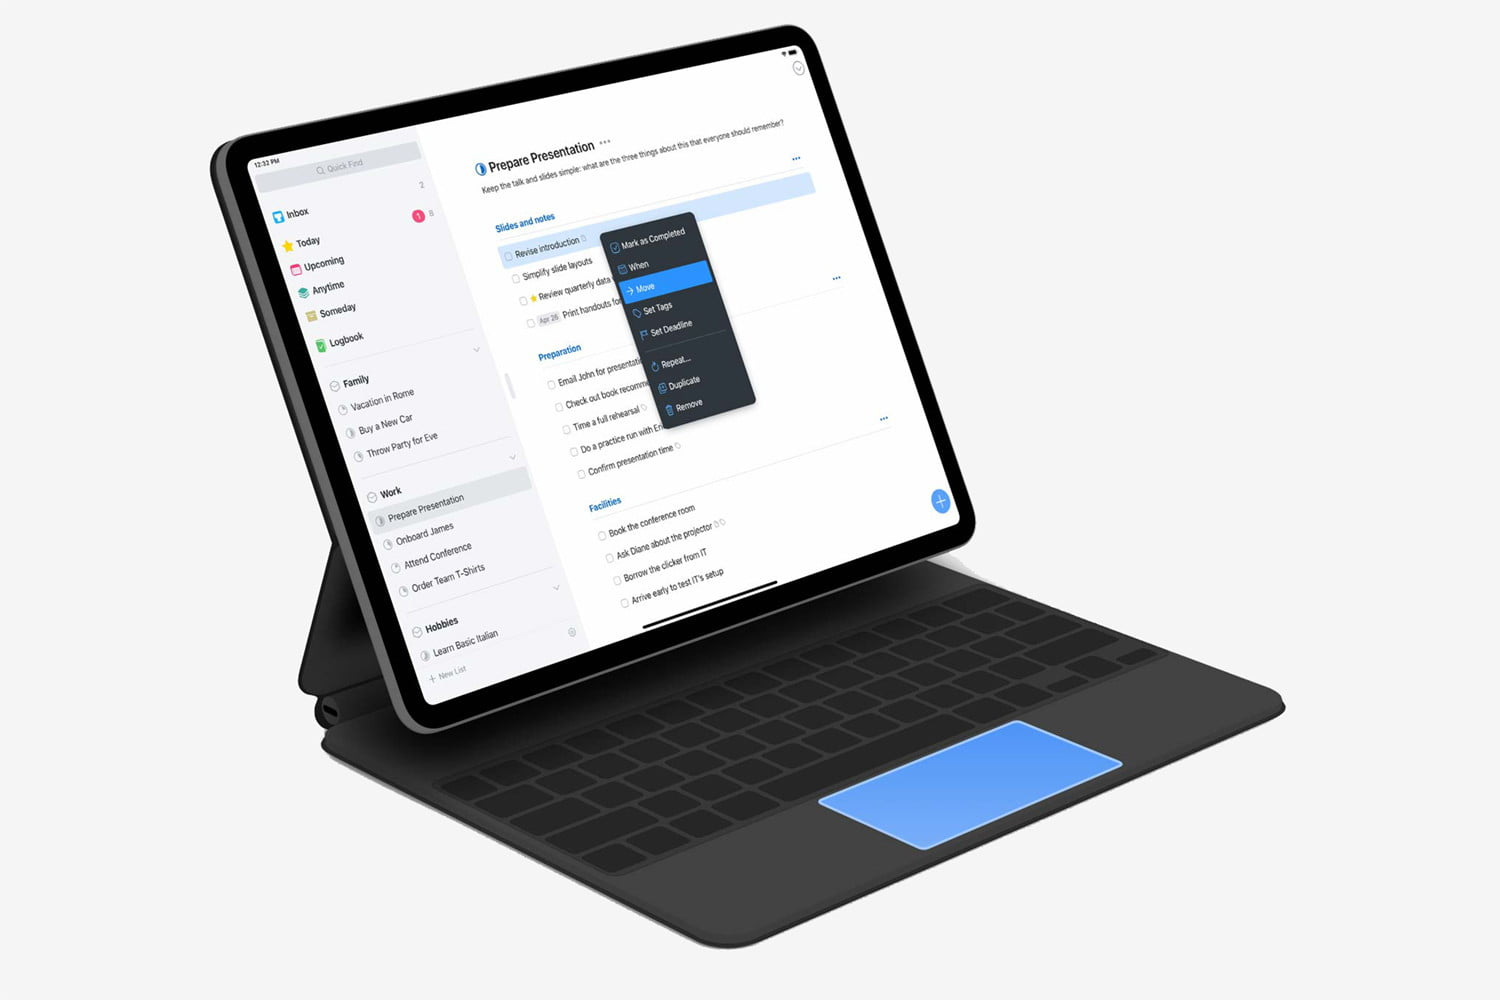 Things 3 for iPad Pro